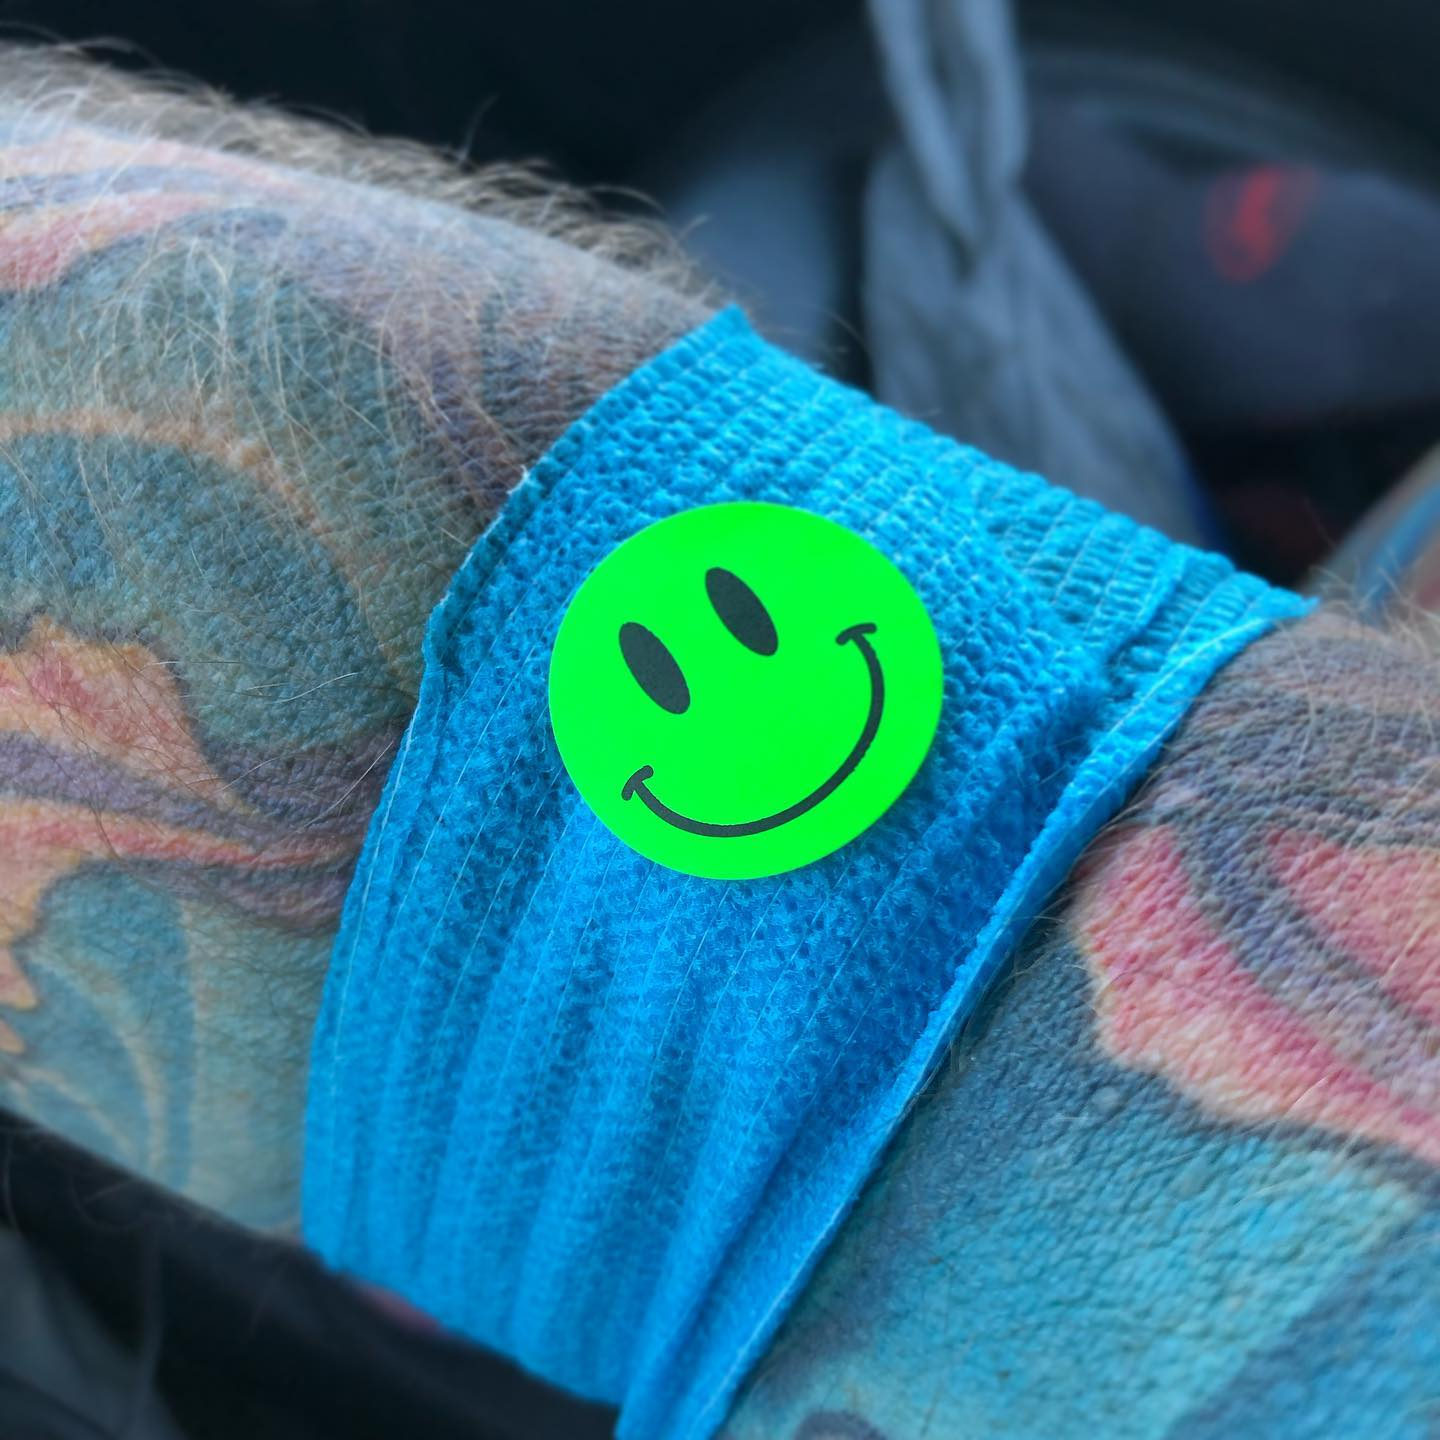 I know they mean well with the happy face, but all my brain sees is Mr. Yuk.